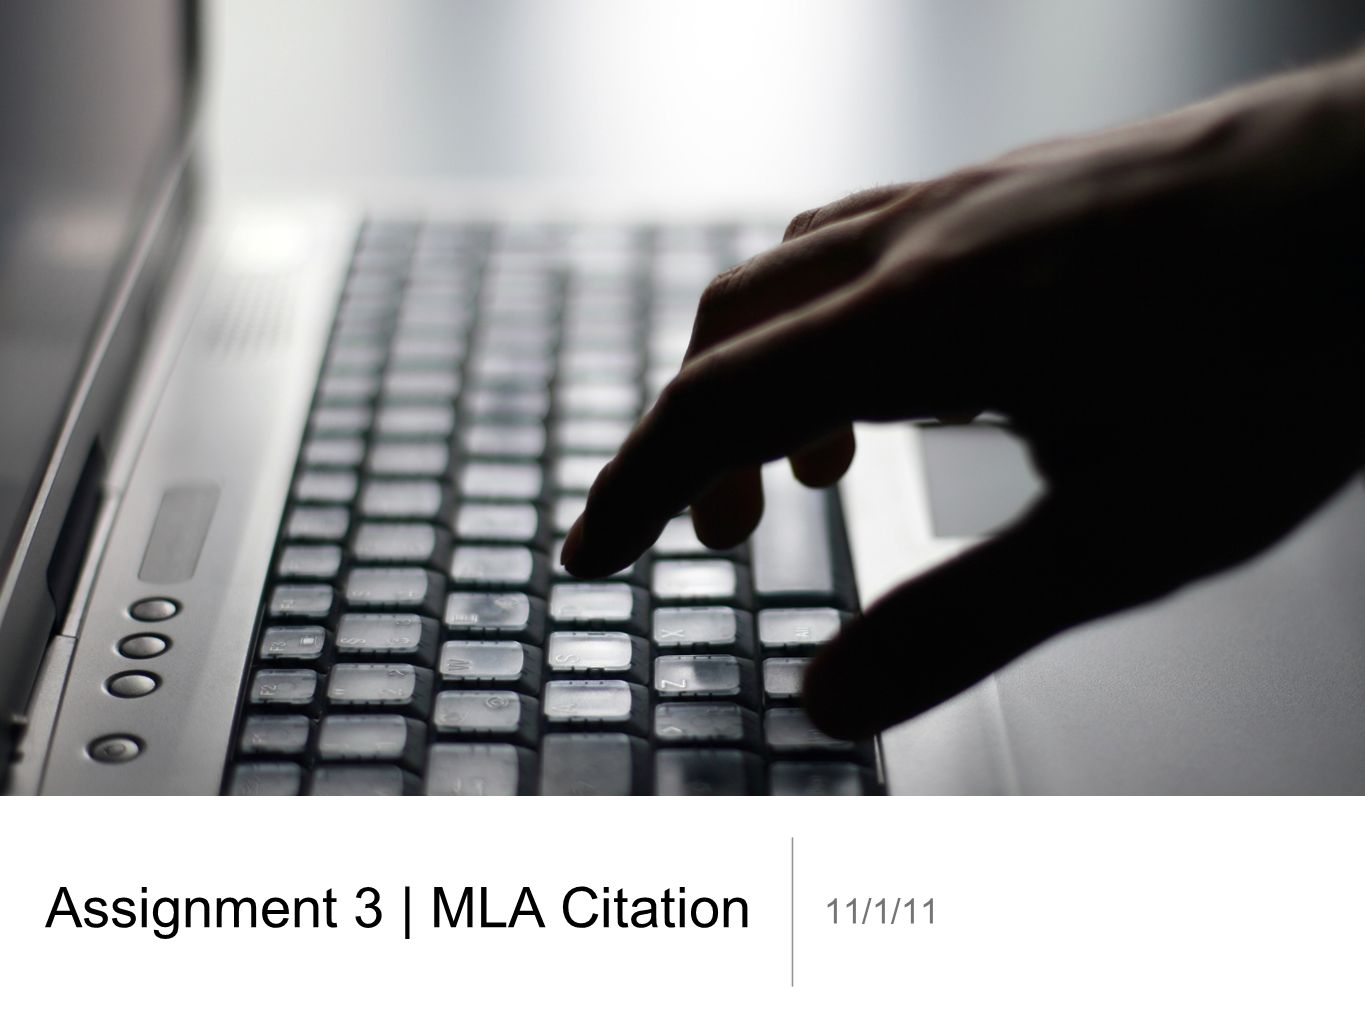 Assignment 3 | MLA Citation